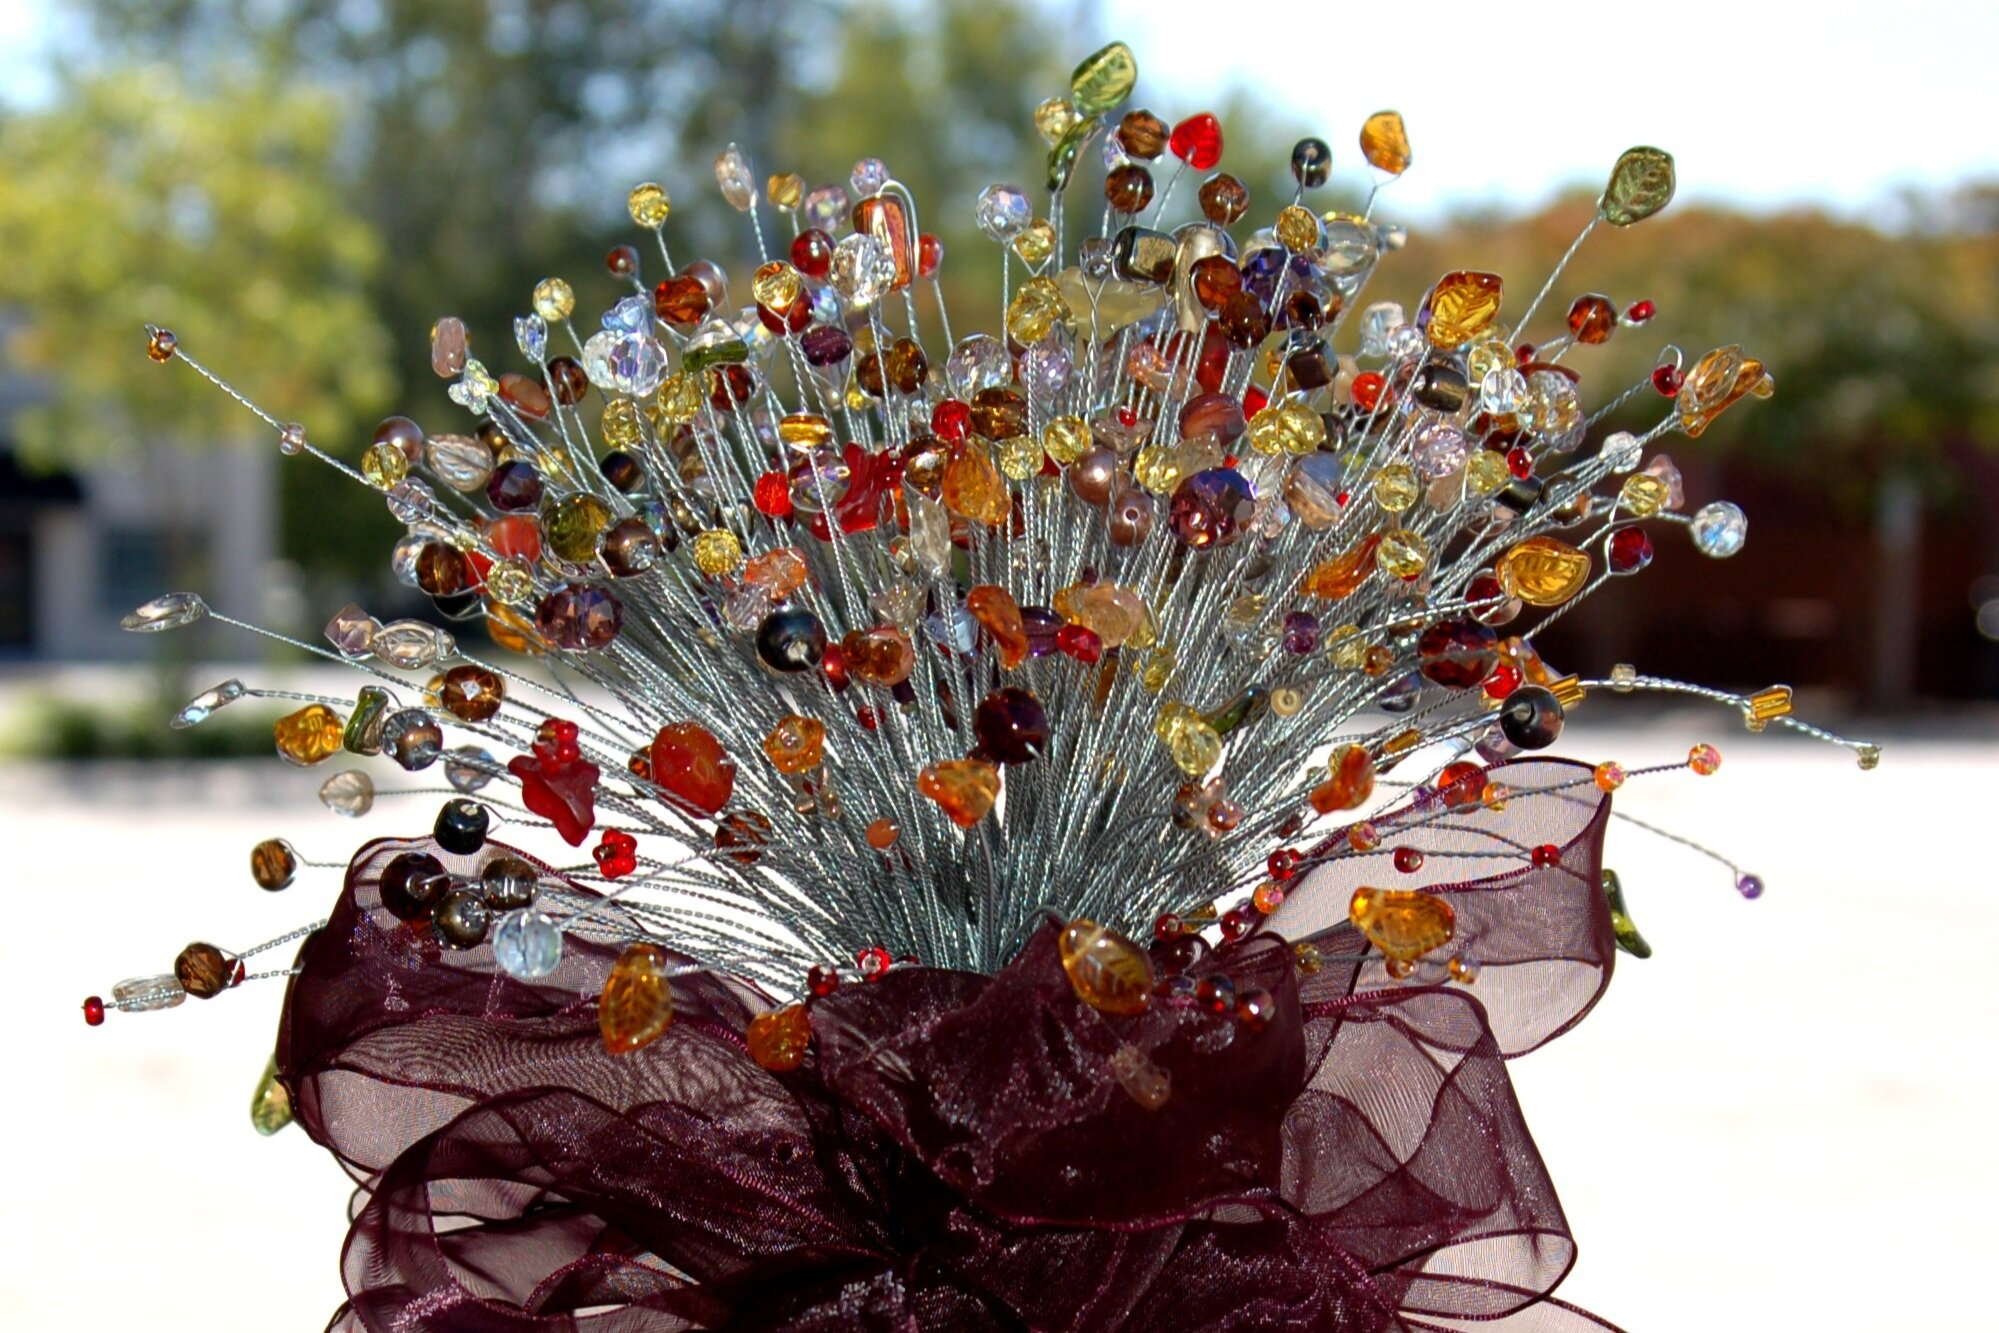 Bouquets & Such - Bouquets and unique handcrafted creations that last a lifetime.